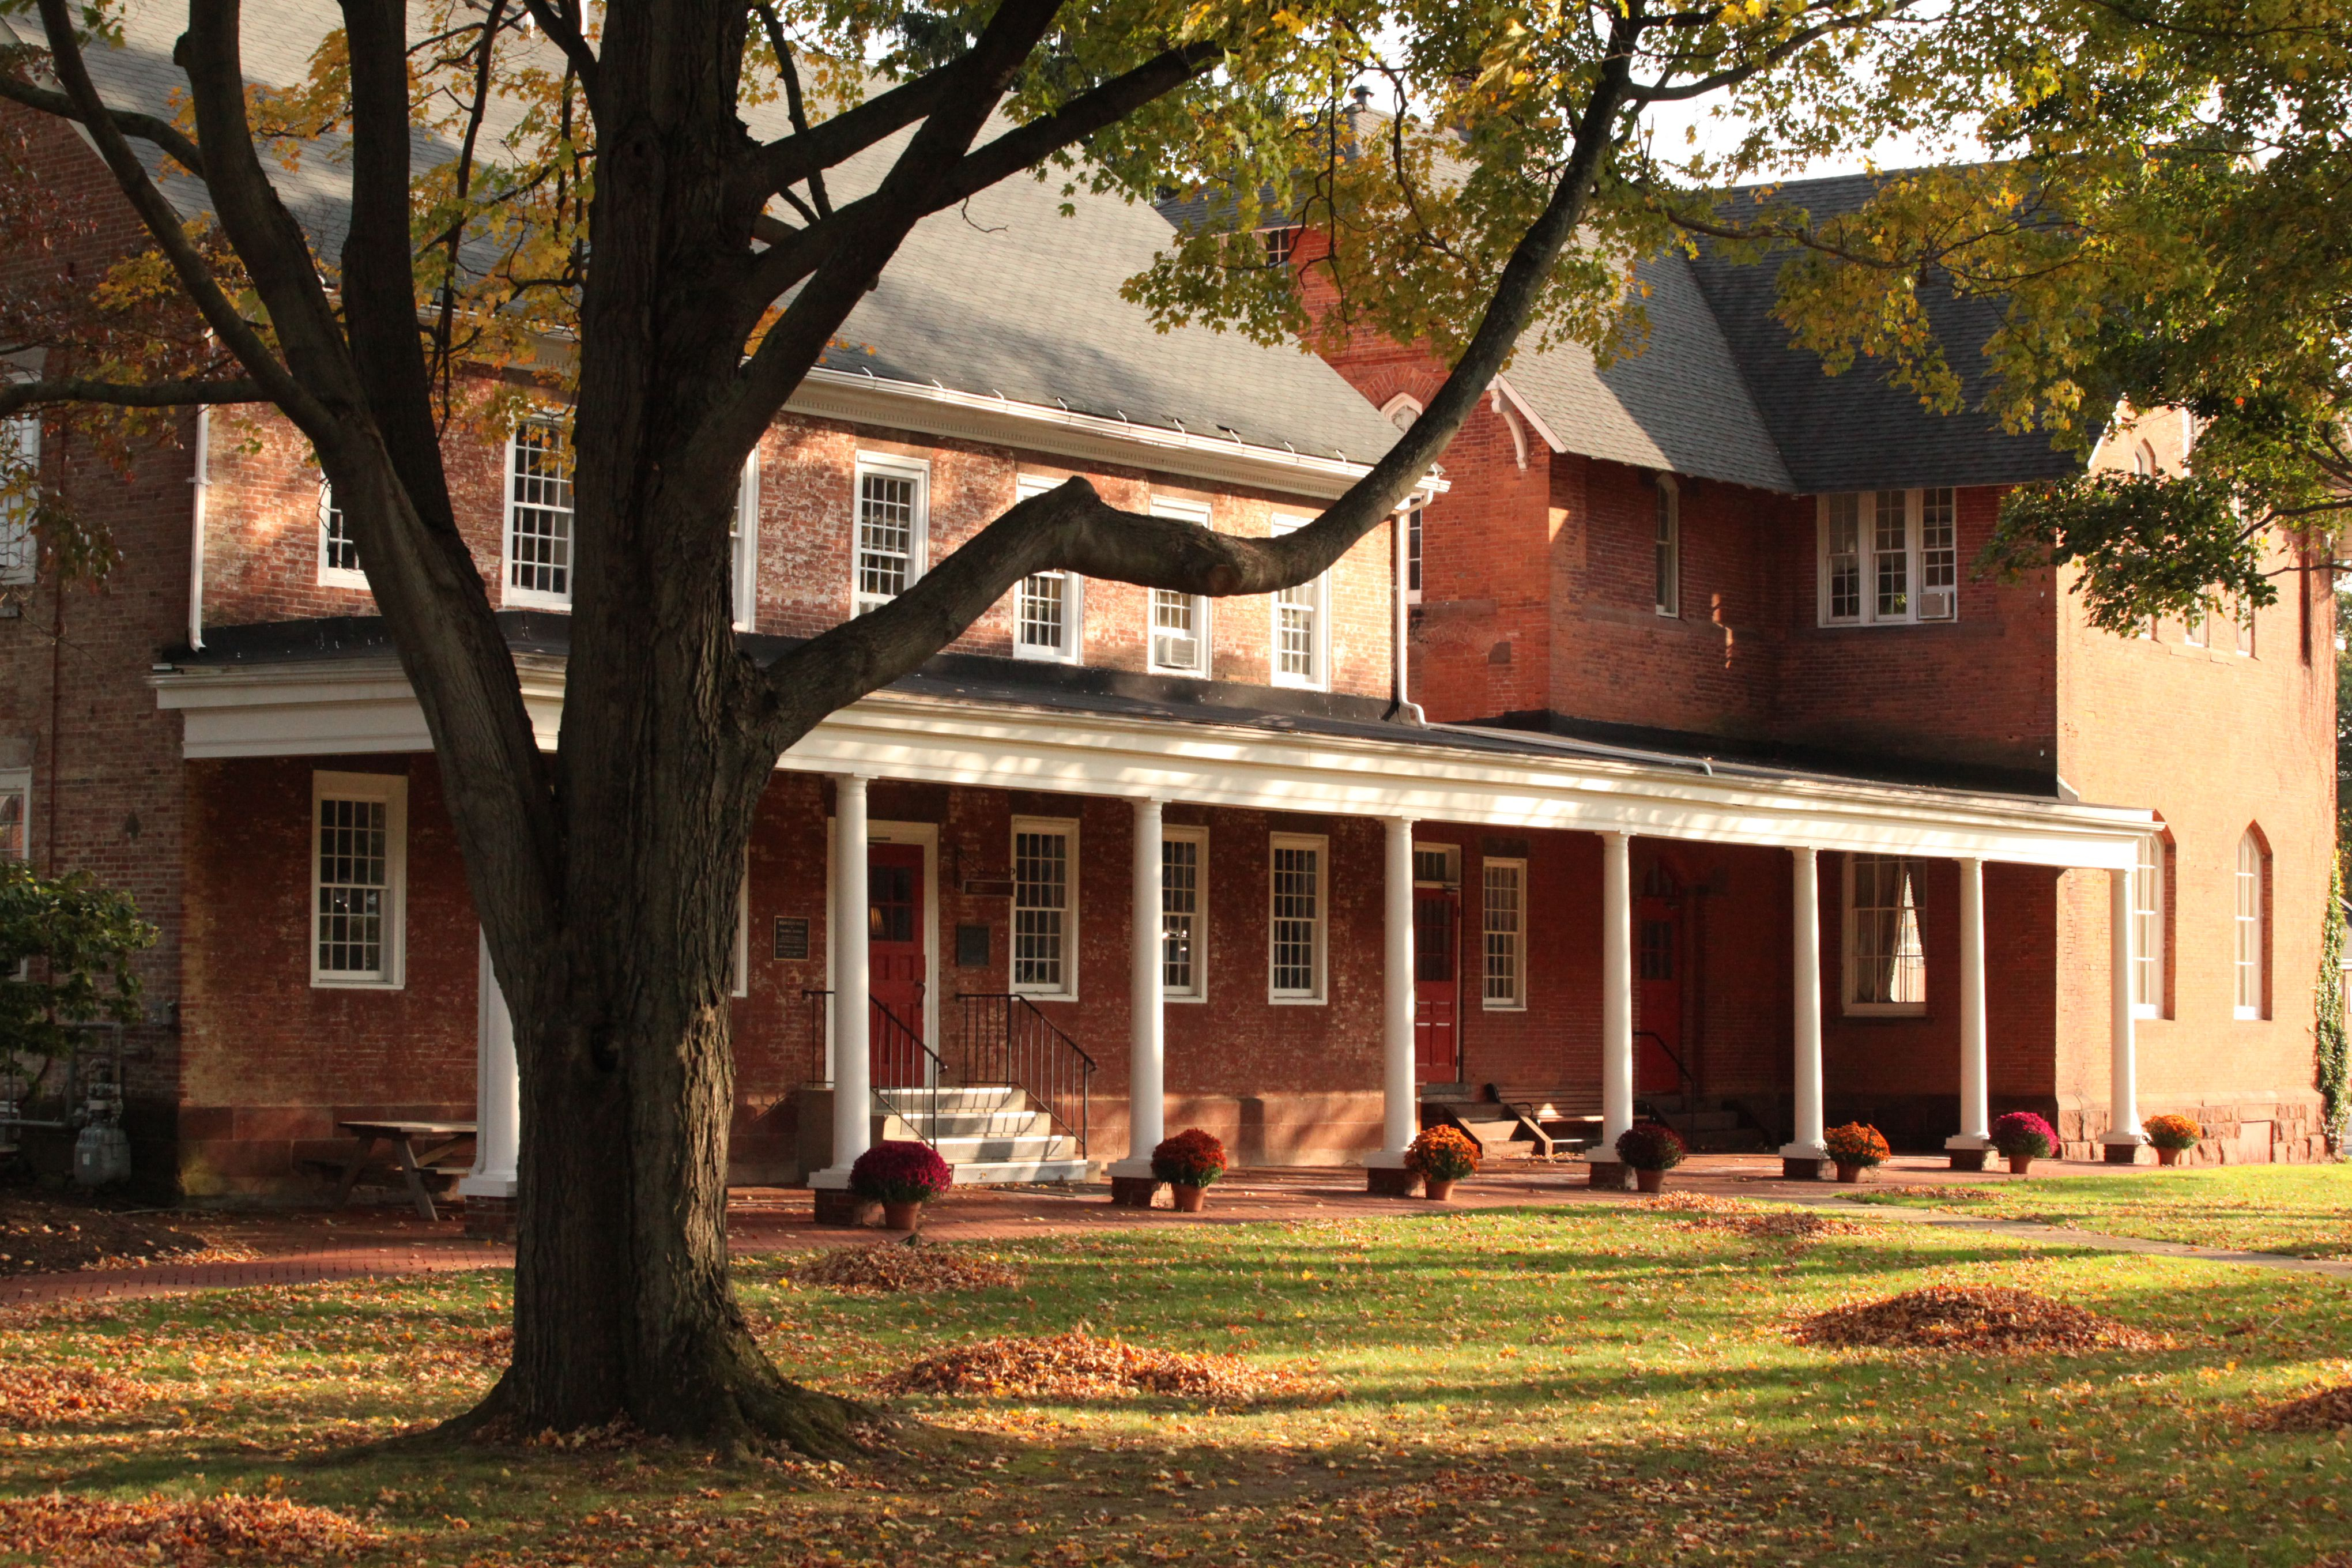 Bowden Hall at Cheshire Academy